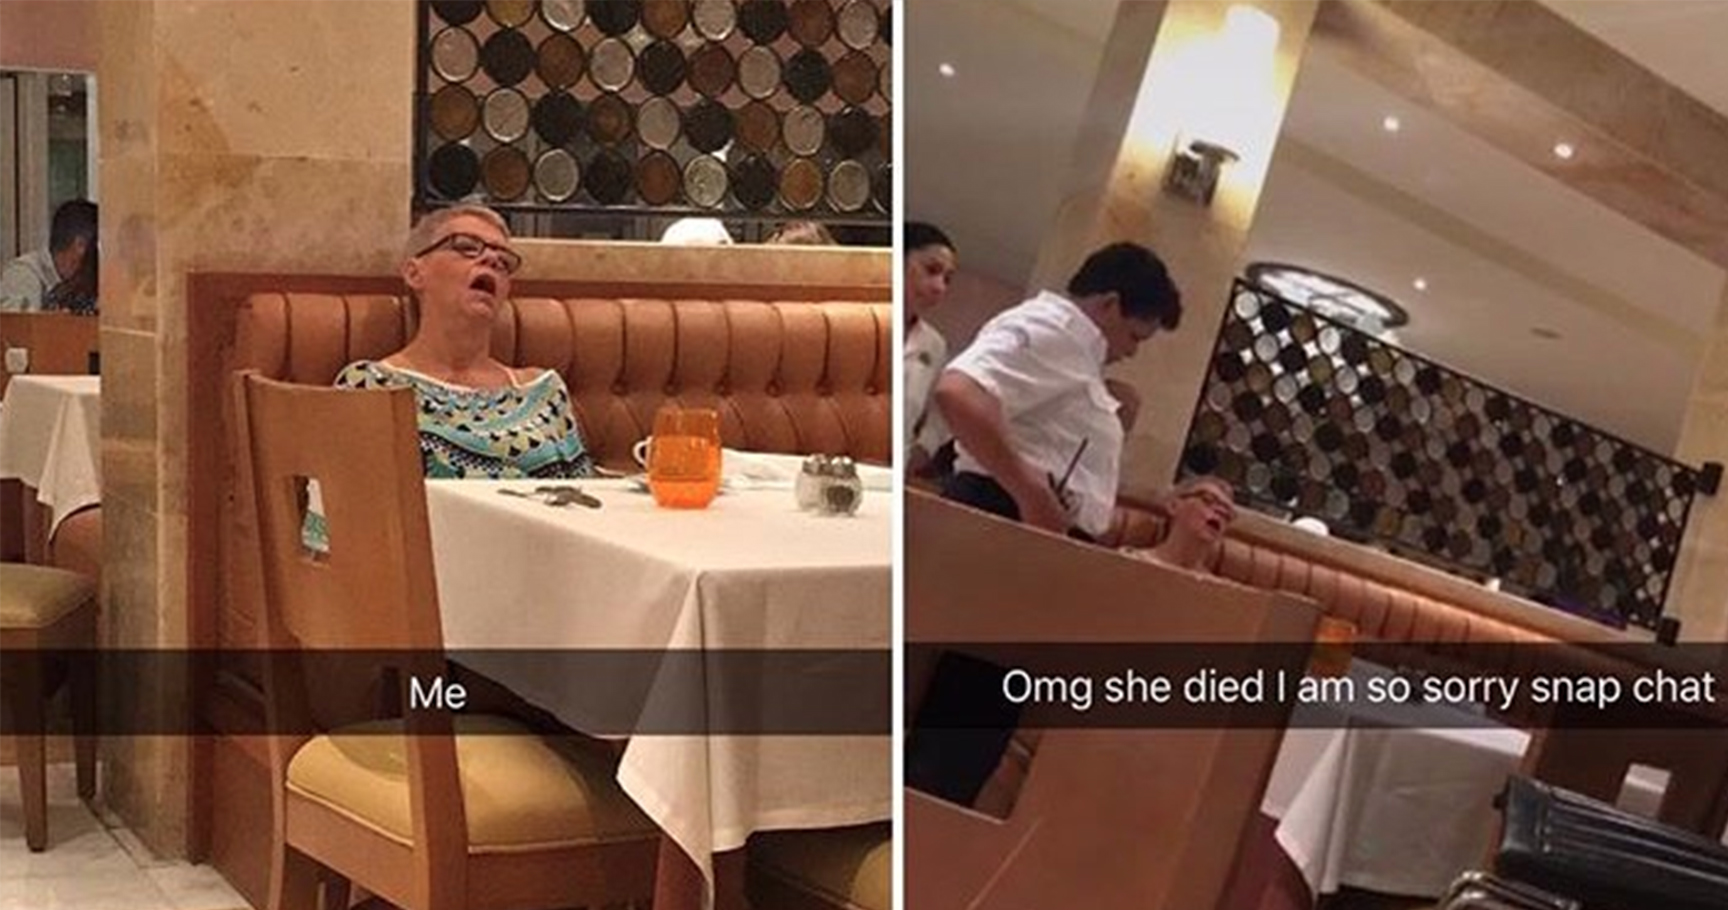 15 Snaps So Bad They Deserve To Get These People Arrested